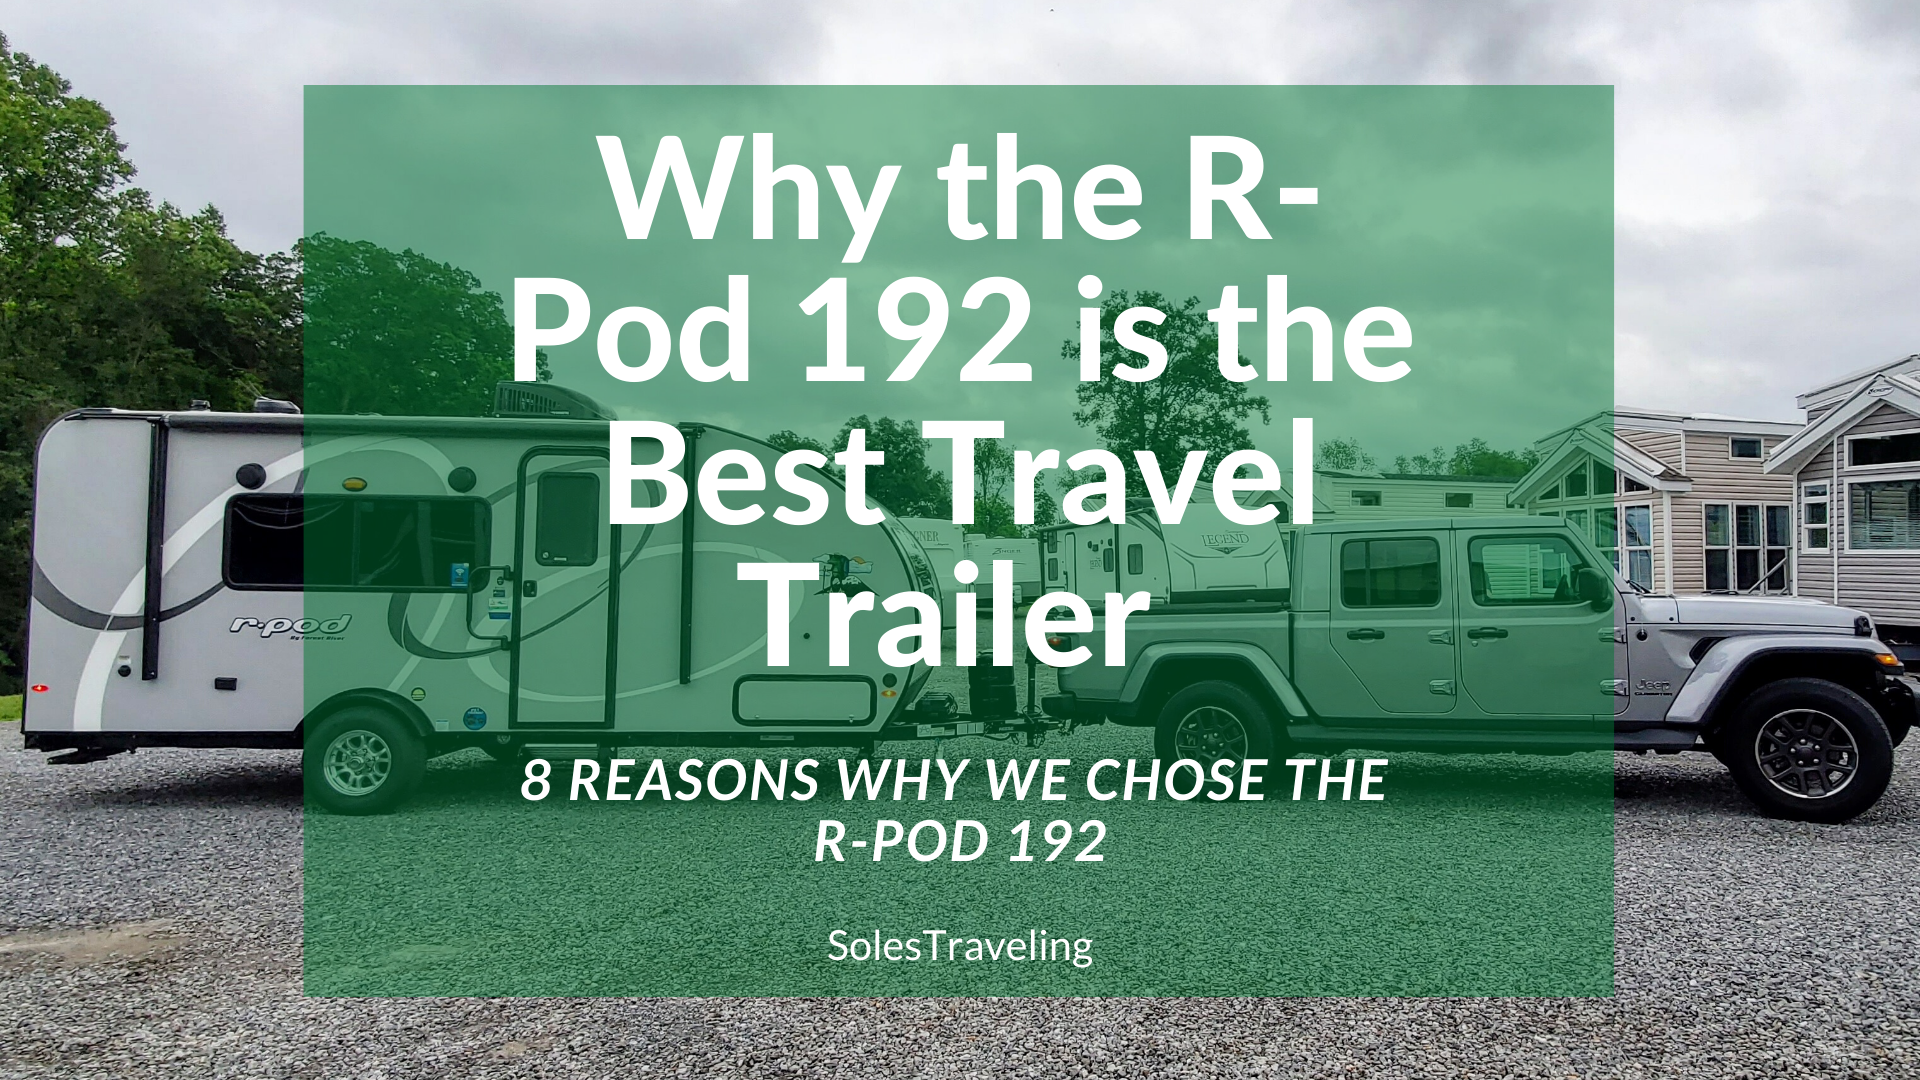 r-pod 192 best travel trailer